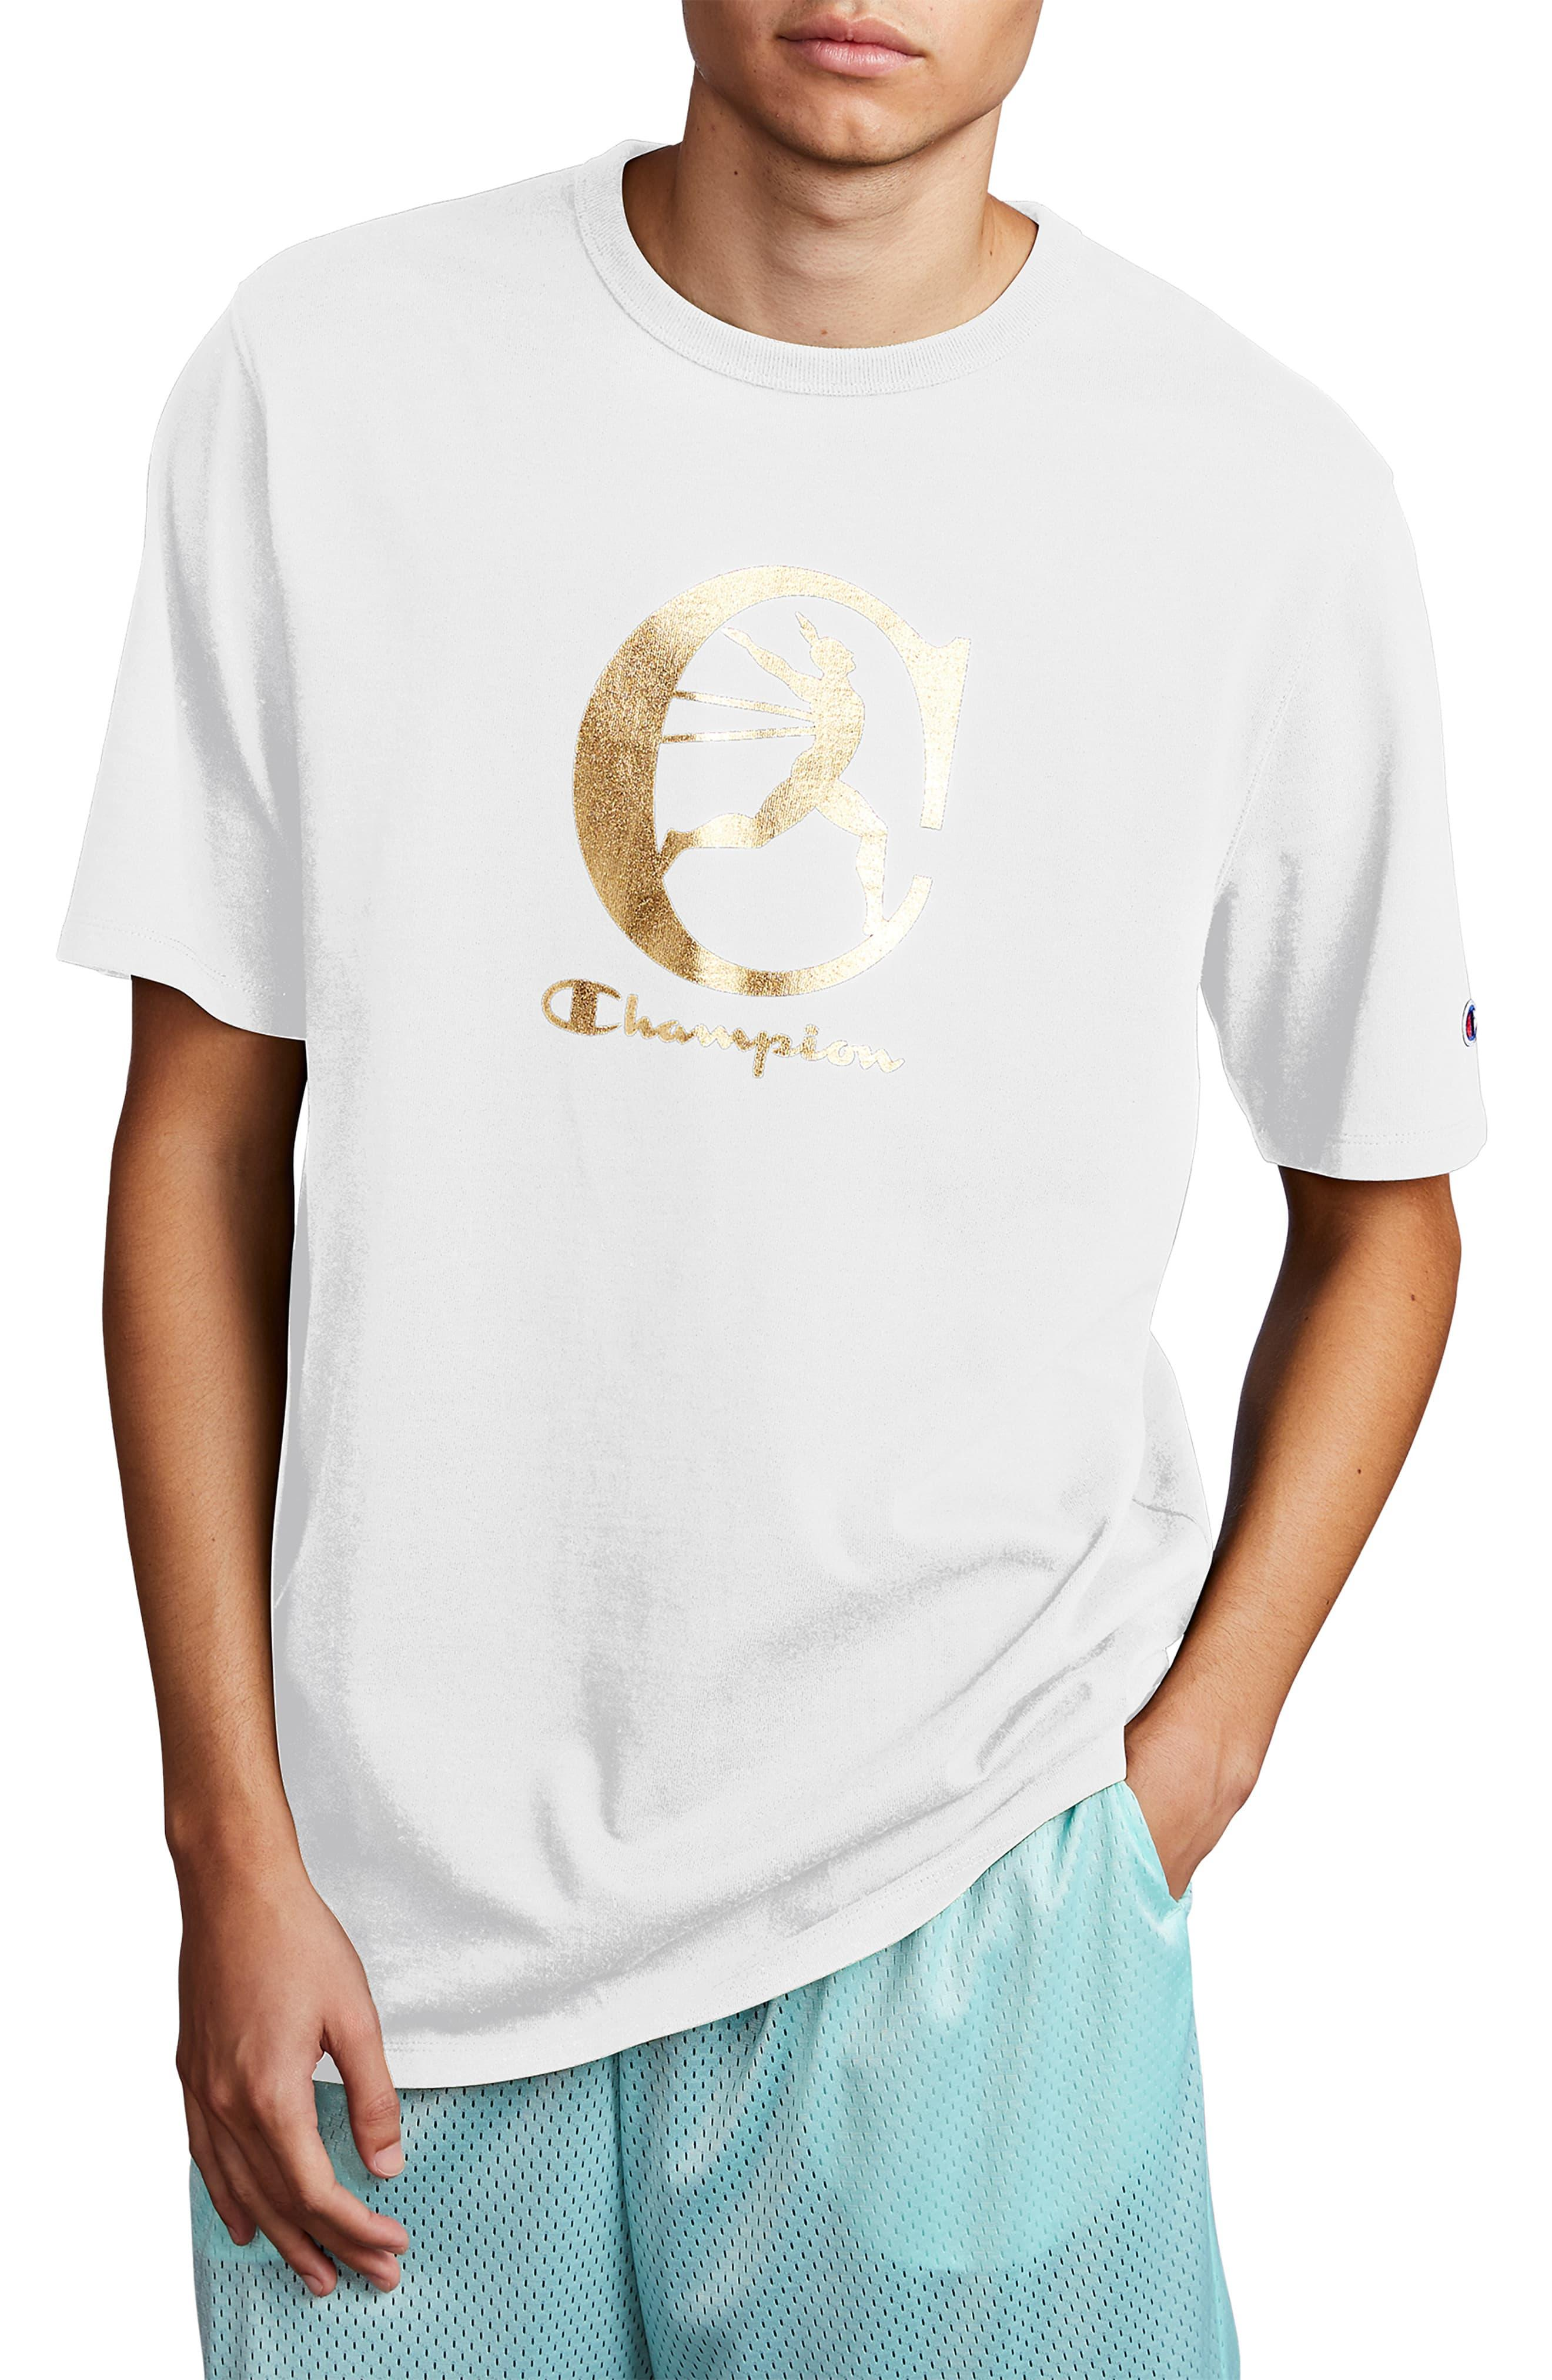 06fc3ed96 Champion Heritage Graphic T-shirt in White for Men - Lyst